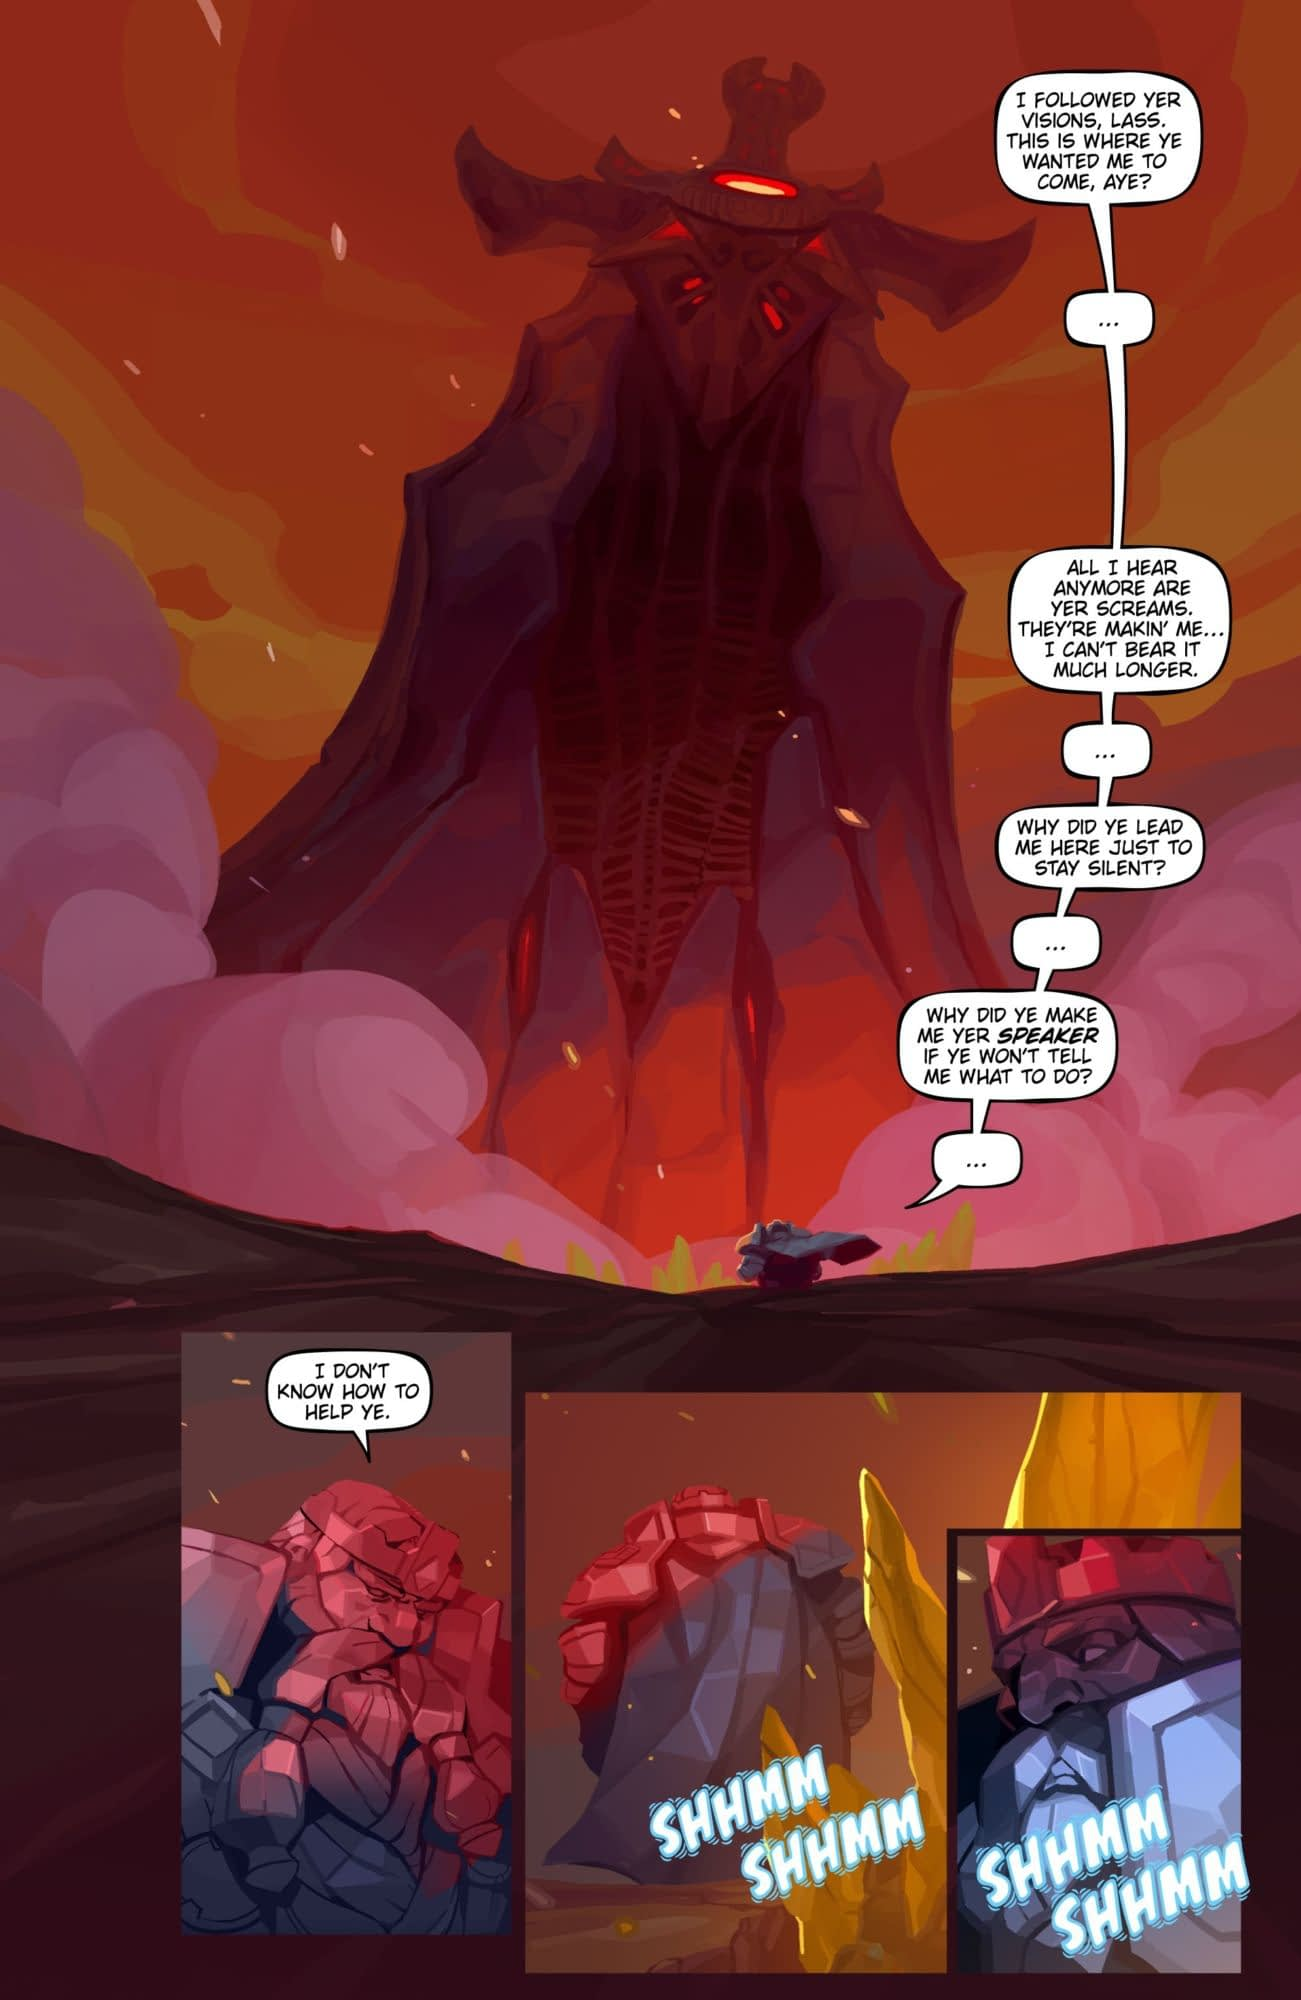 Blizzard Reveals First Pages from the World of Warcraft Comic